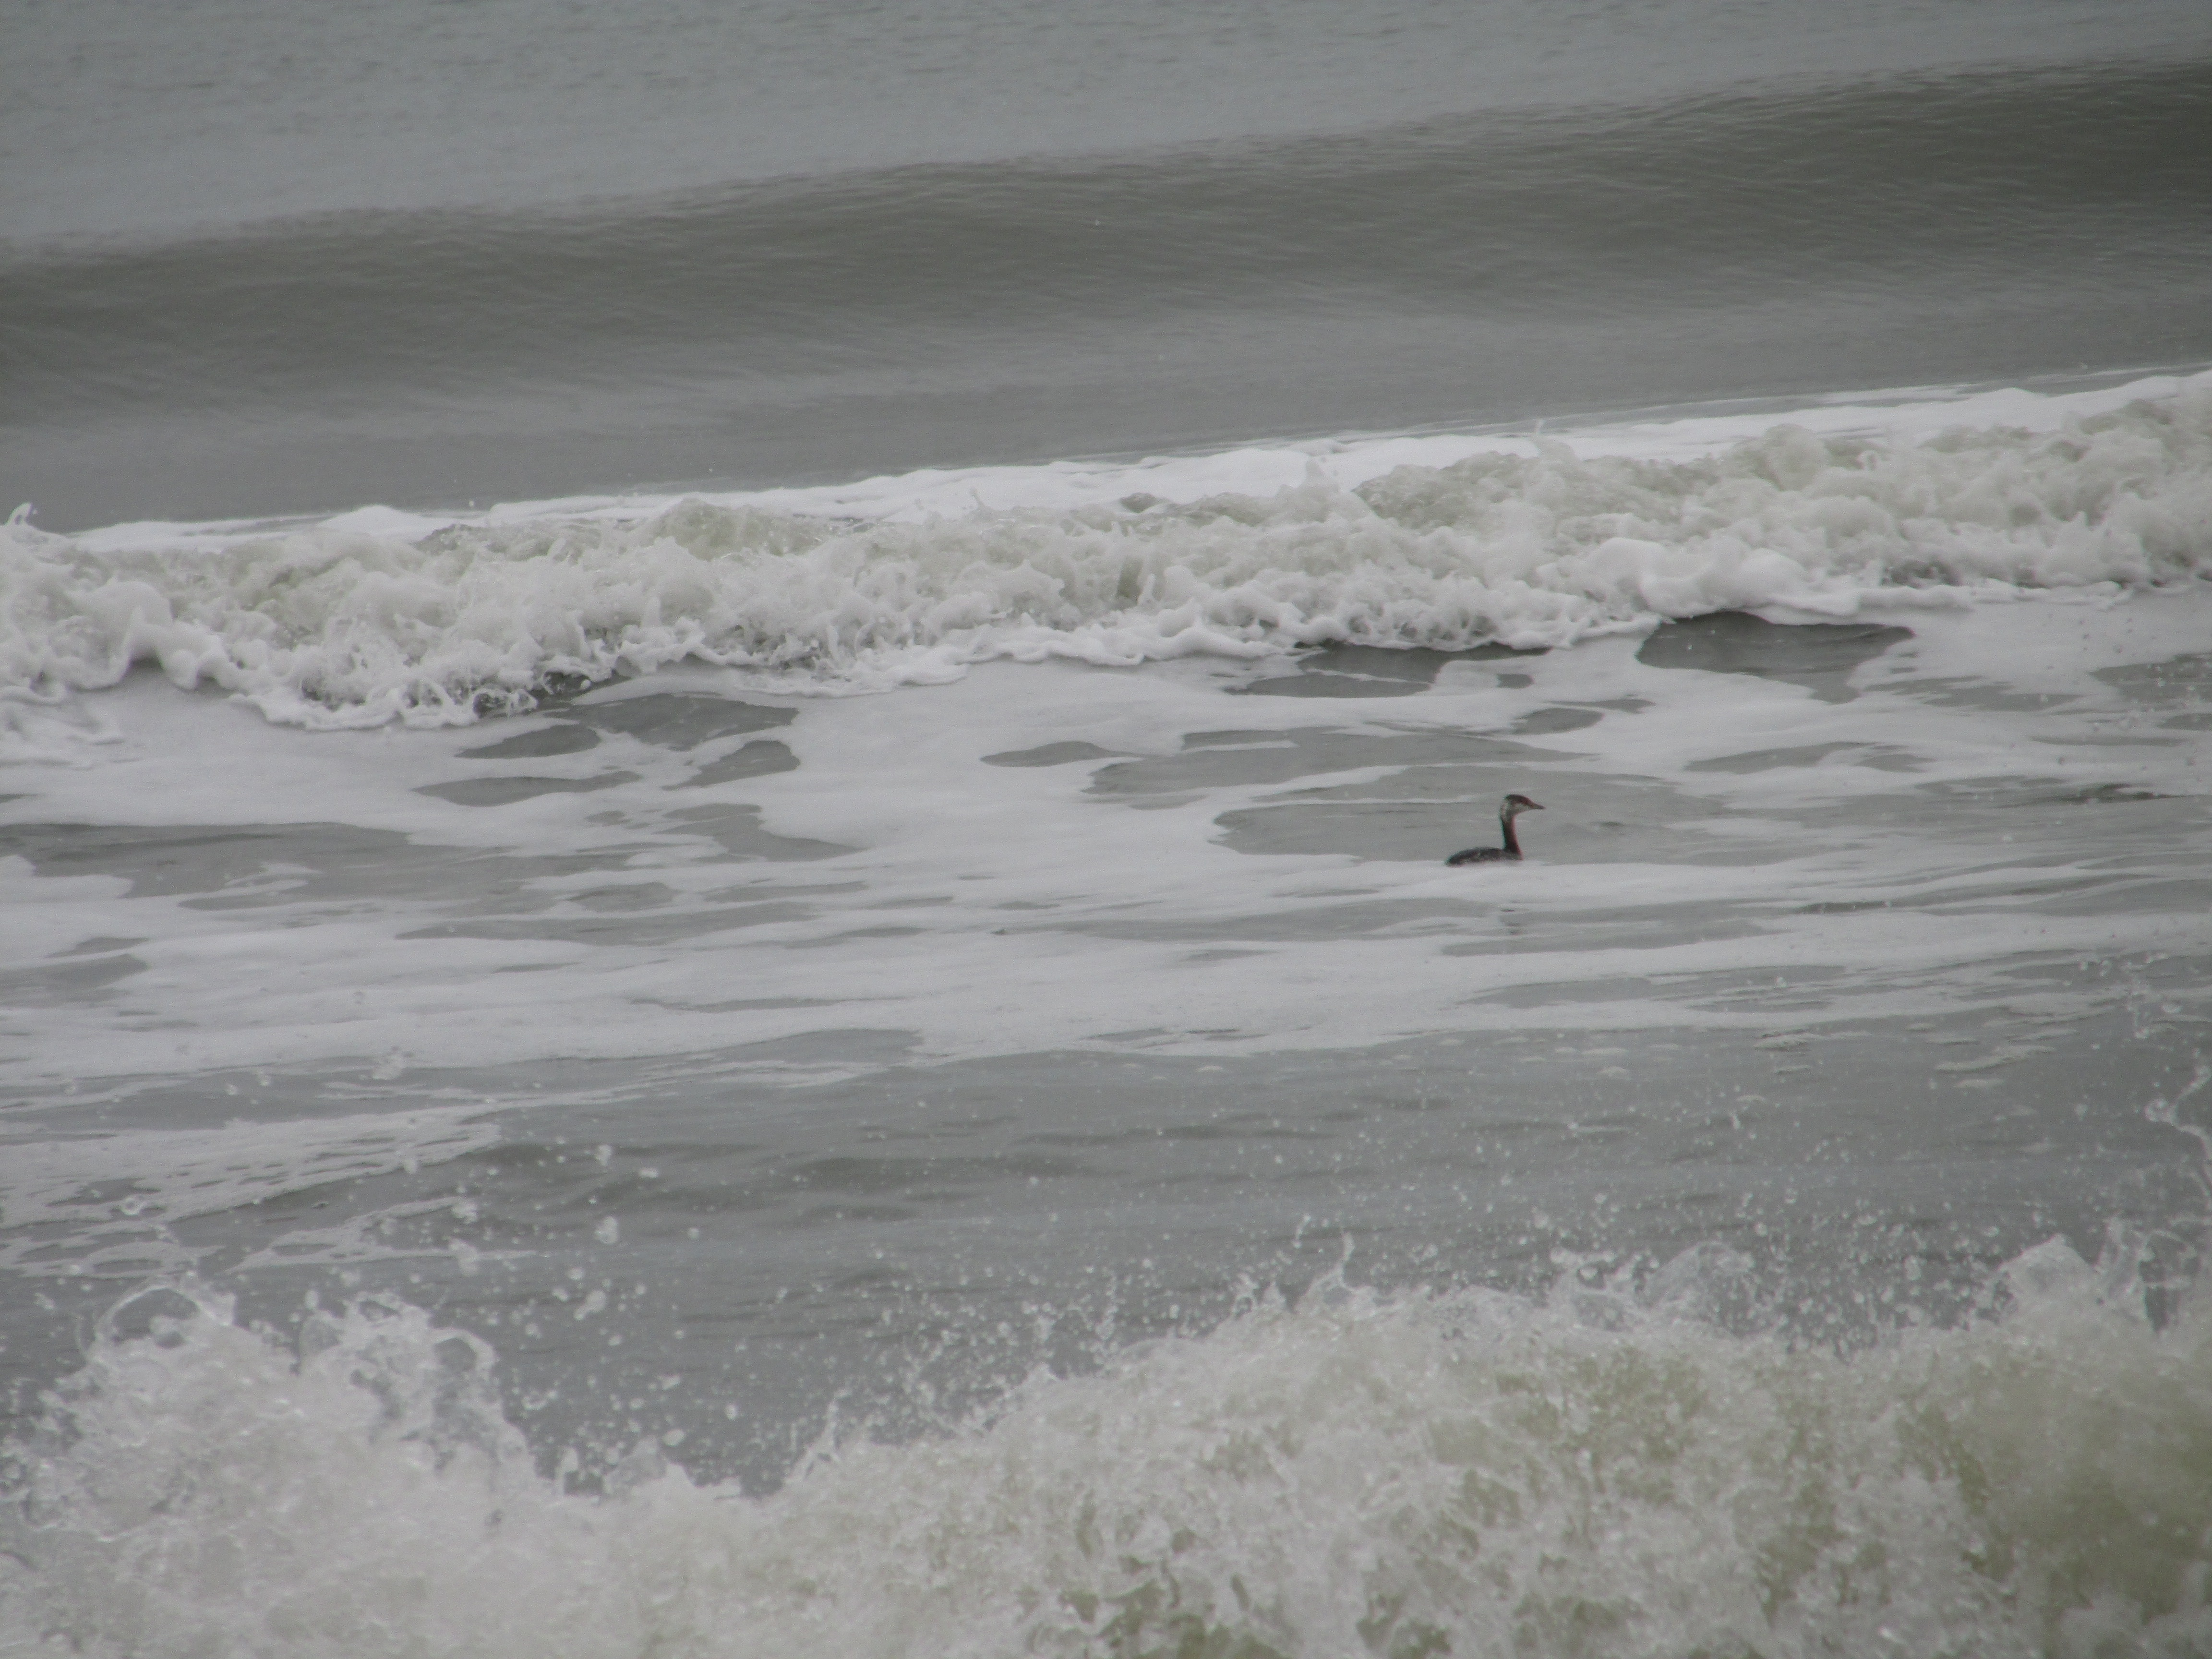 It's actually a horned grebe ( Podiceps auritu s) in the surf.